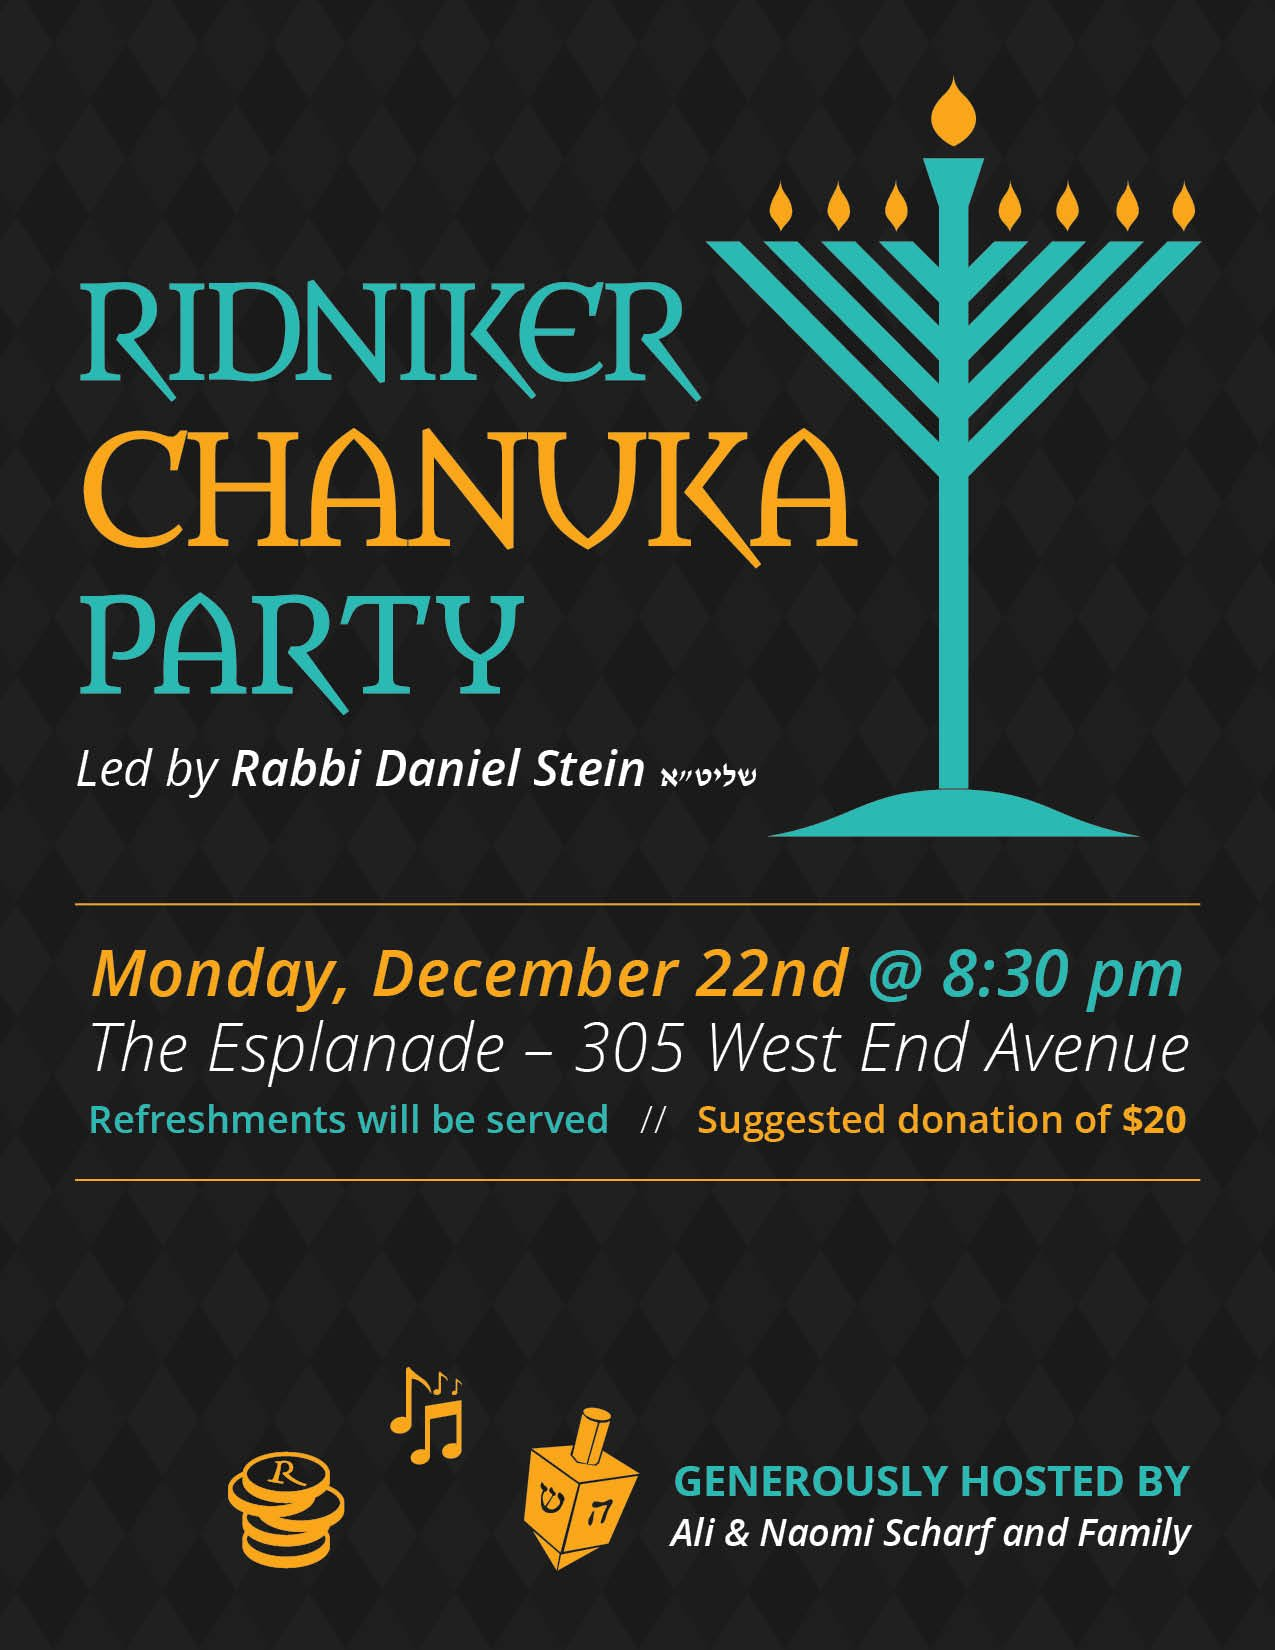 Ridniker Chanuka Party 2014